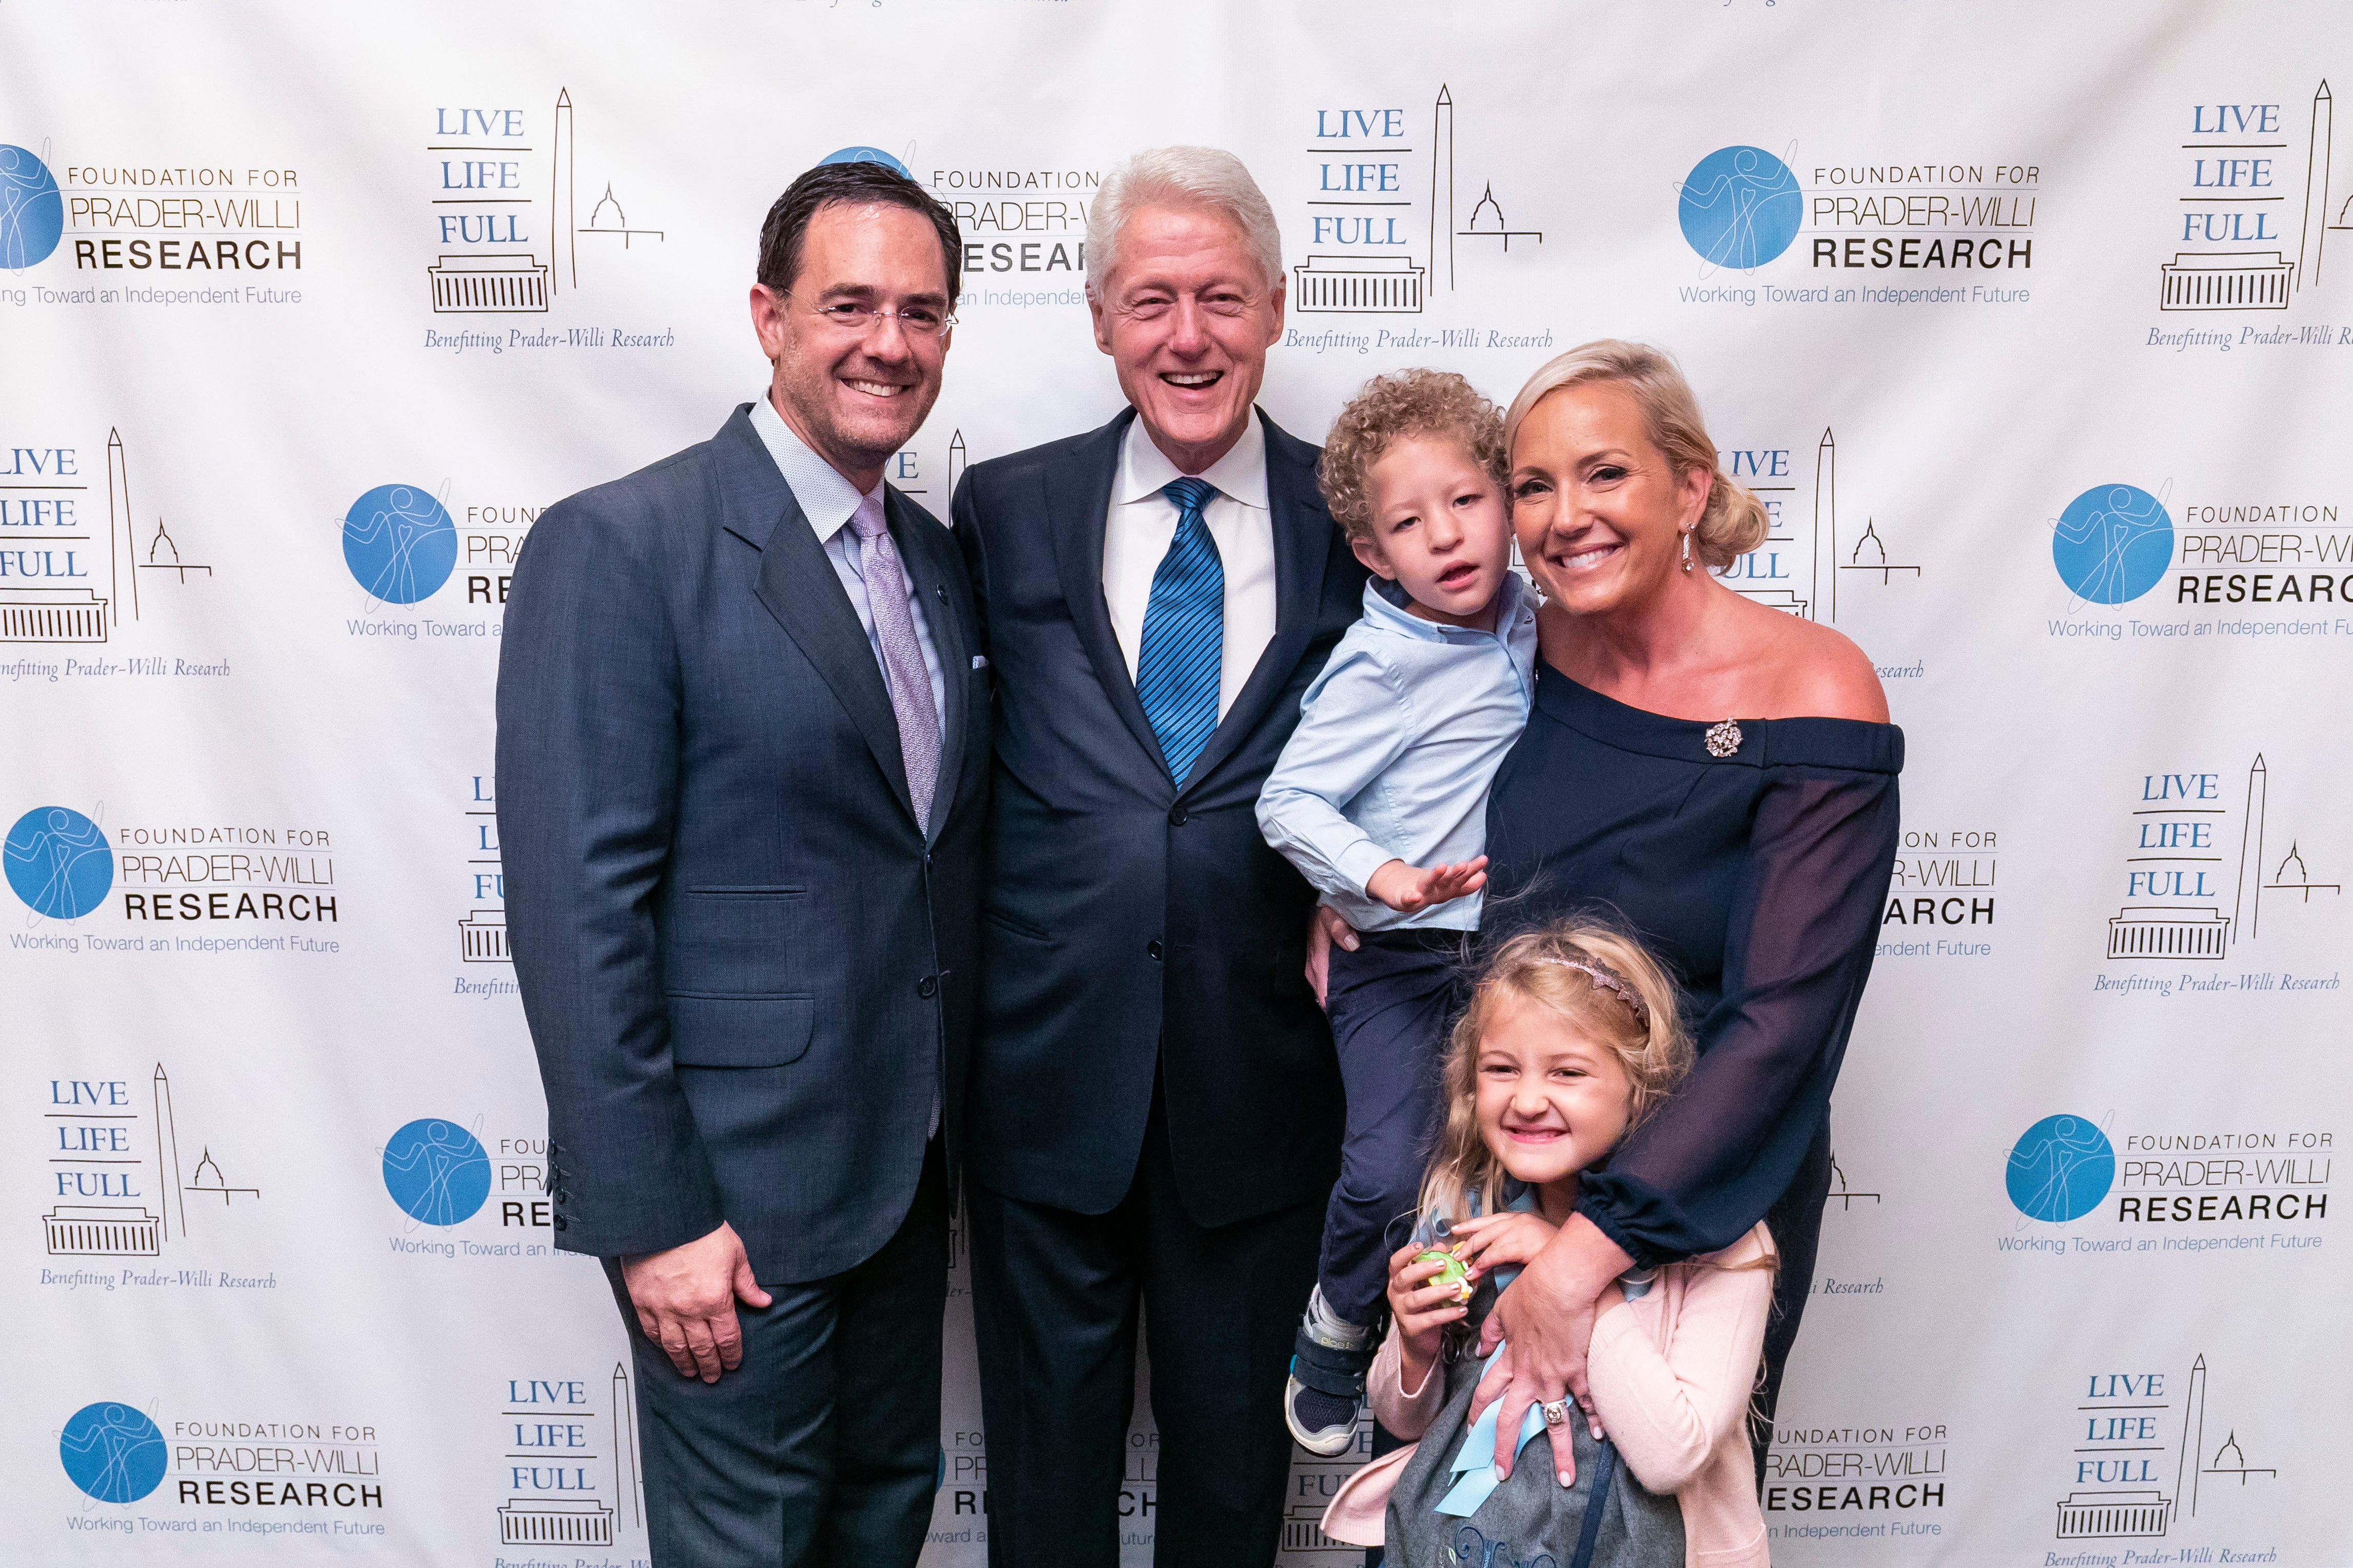 President Bill Clinton, Timothy Shriver Headline 2018 Live Life Full Gala